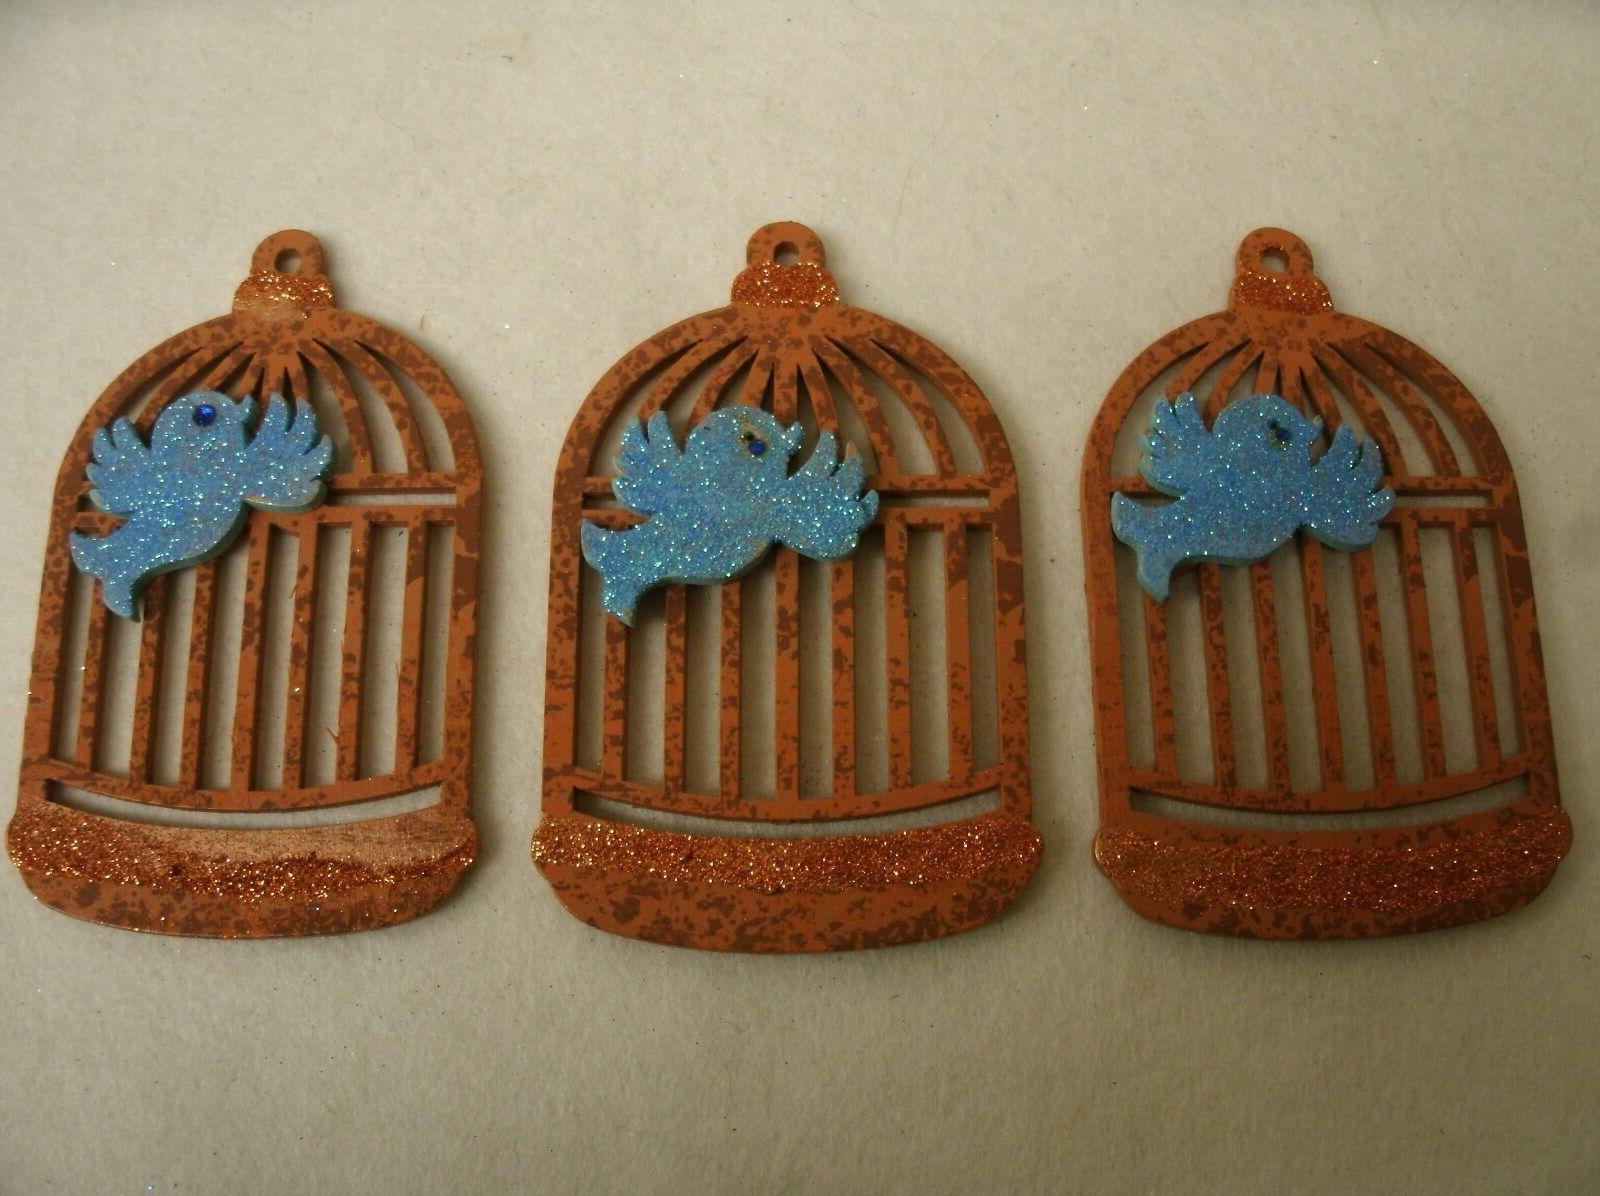 Lot of 3 Wood Birdcage Ornaments - painted glittered signed